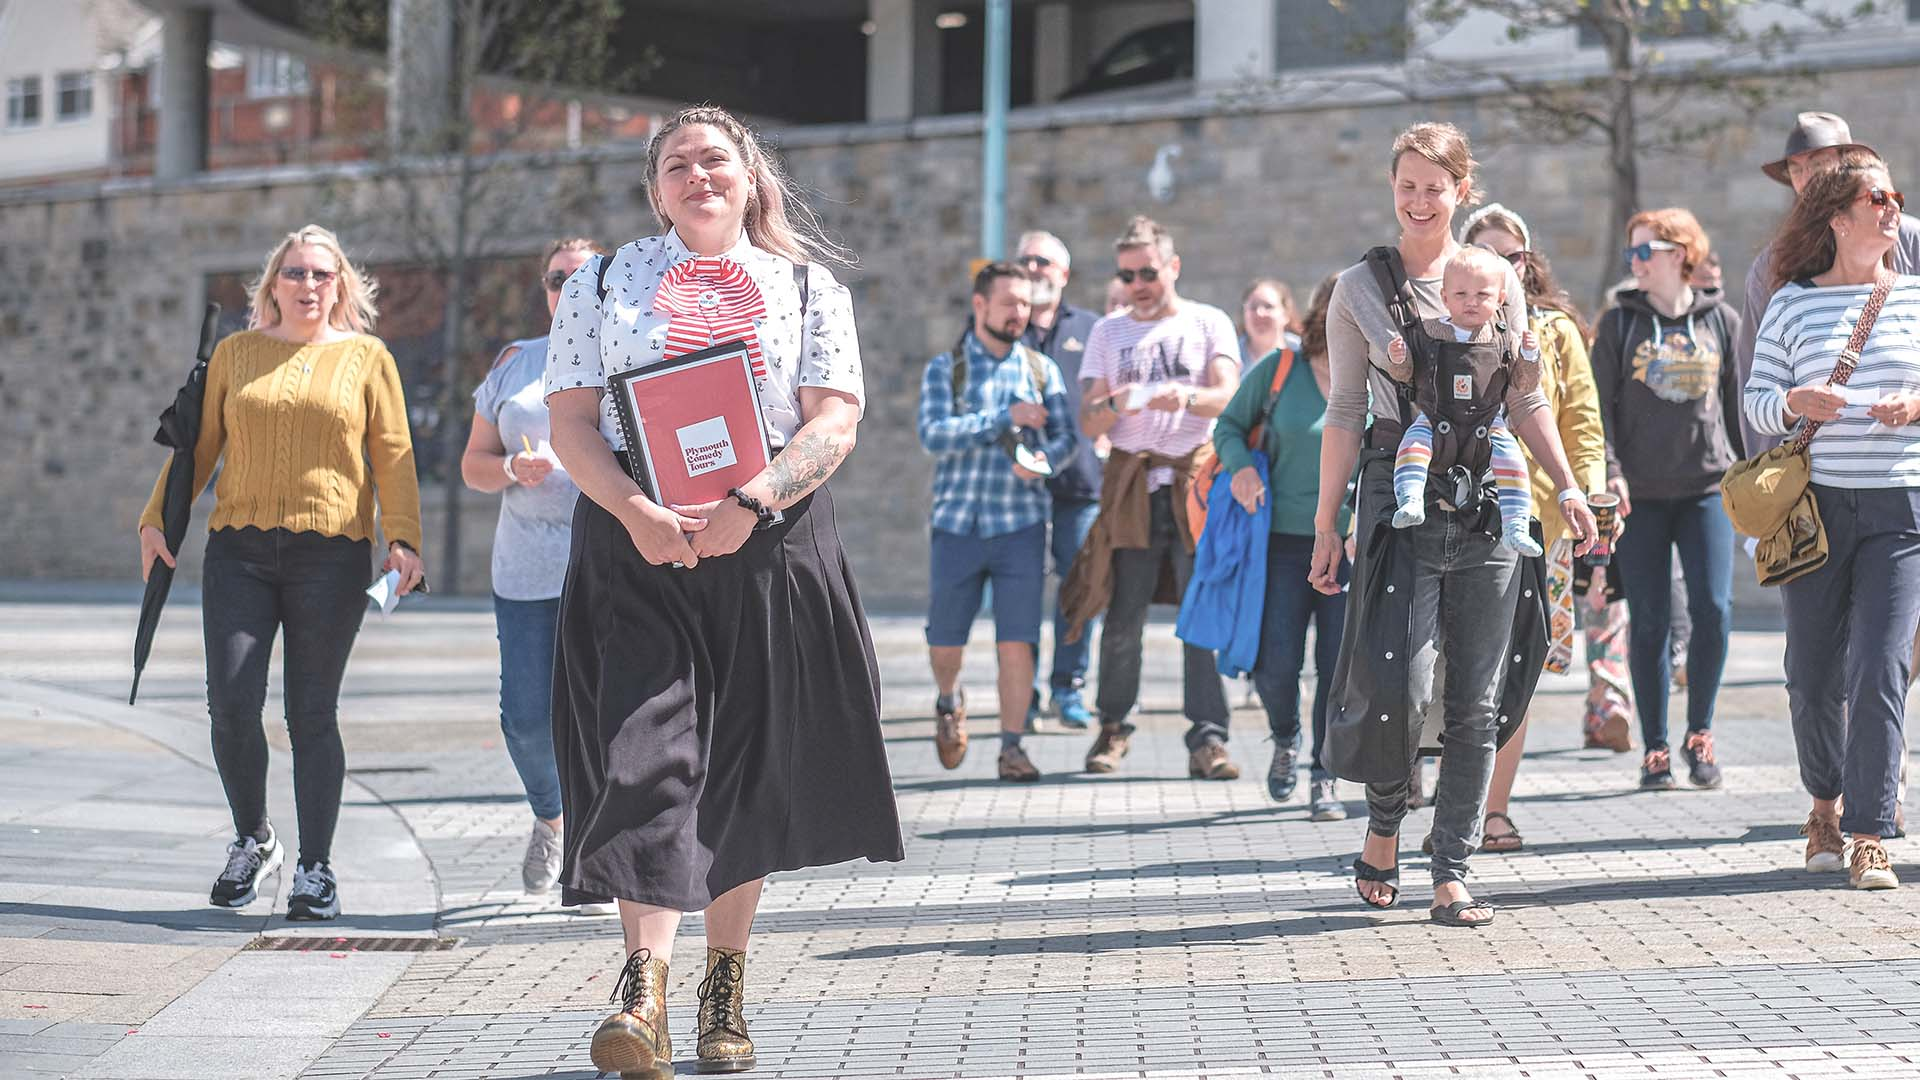 Plymouth Comedy Tours guide Suzy Bennett leading a group of happy tourists.